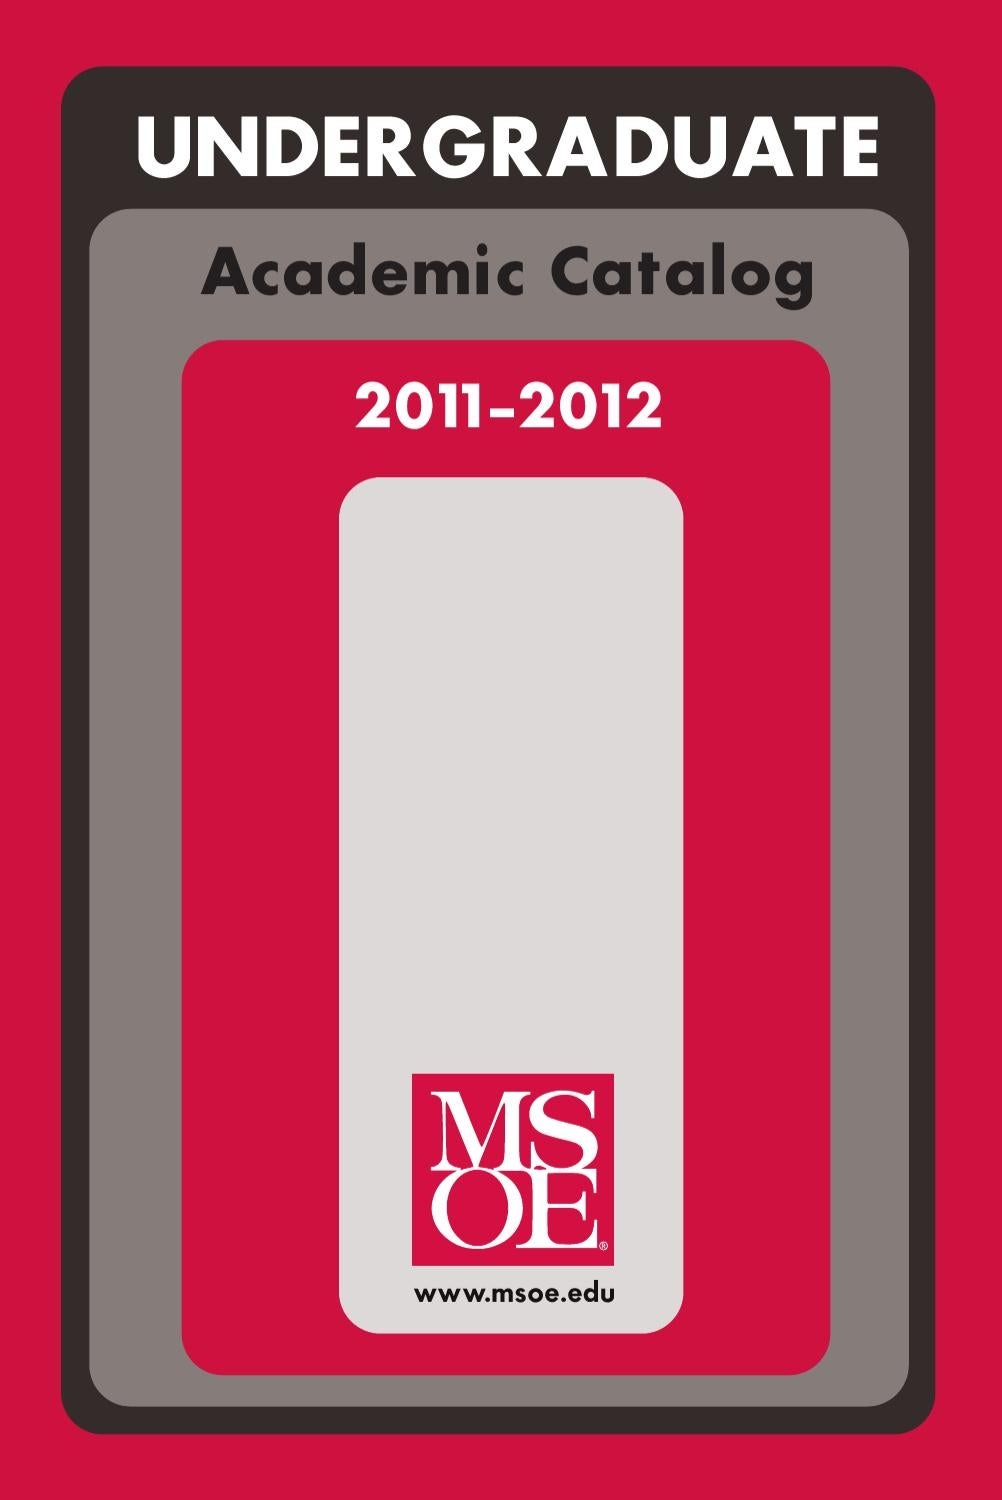 Msoe Undergraduate Academic Catalog 2011 2012 By Milwaukee School Electrical Engineering Tutorials Thevenin39s And Norton39s Theorem Of Issuu